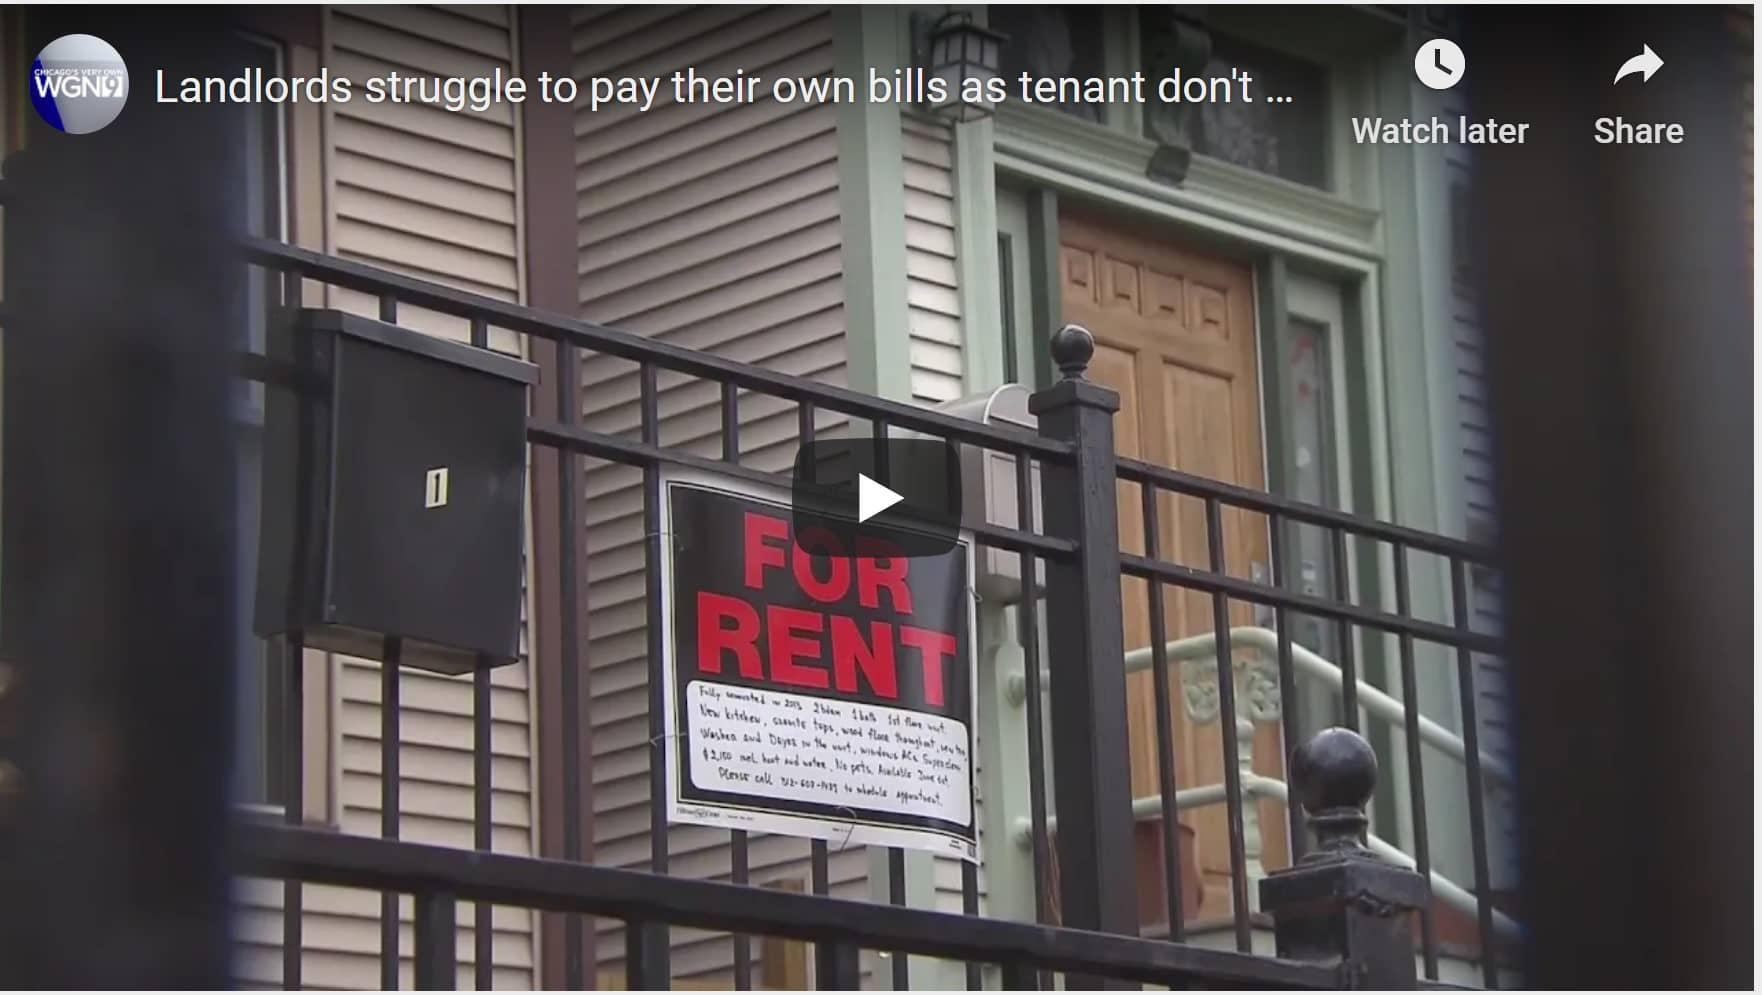 Landlords struggle to pay their own bills as tenant don't make rent